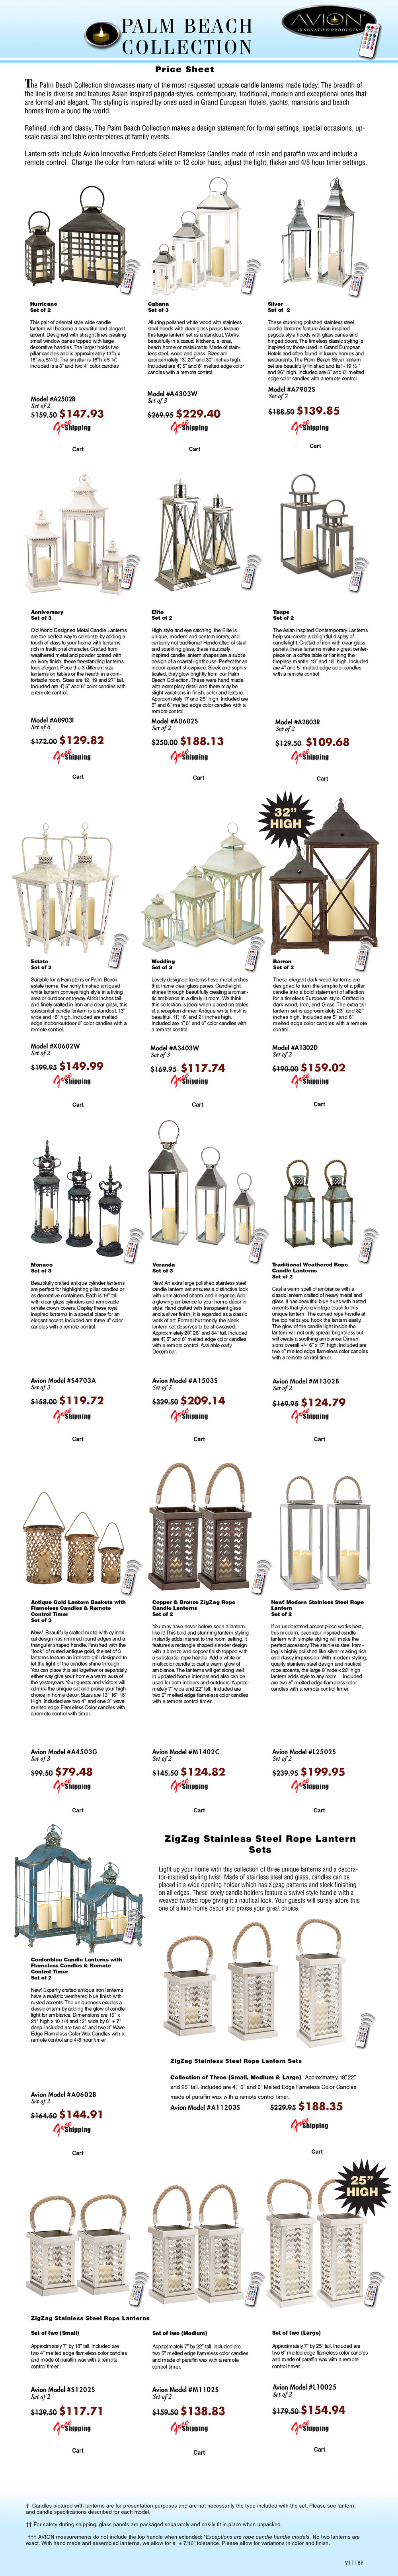 Specification sheet for avioninnovative Palm Beach tropical candle lantern. The Avion Palm Beach collection features upscale designer quality metal lanterns, wood lanterns, stainless steel lanterns from melrose, classic, traditional, modern imax, tropical urban trends, cottage style lanterns like pottery barn, gerson everlasting glow motion flame LED candles; color candles from mooncandles, Kohree, like luminara, candle lamps plus wax. The package price list includes LED battery operated candles, flameless candles, a remote control timer, candle change colors 12 different colors by remote